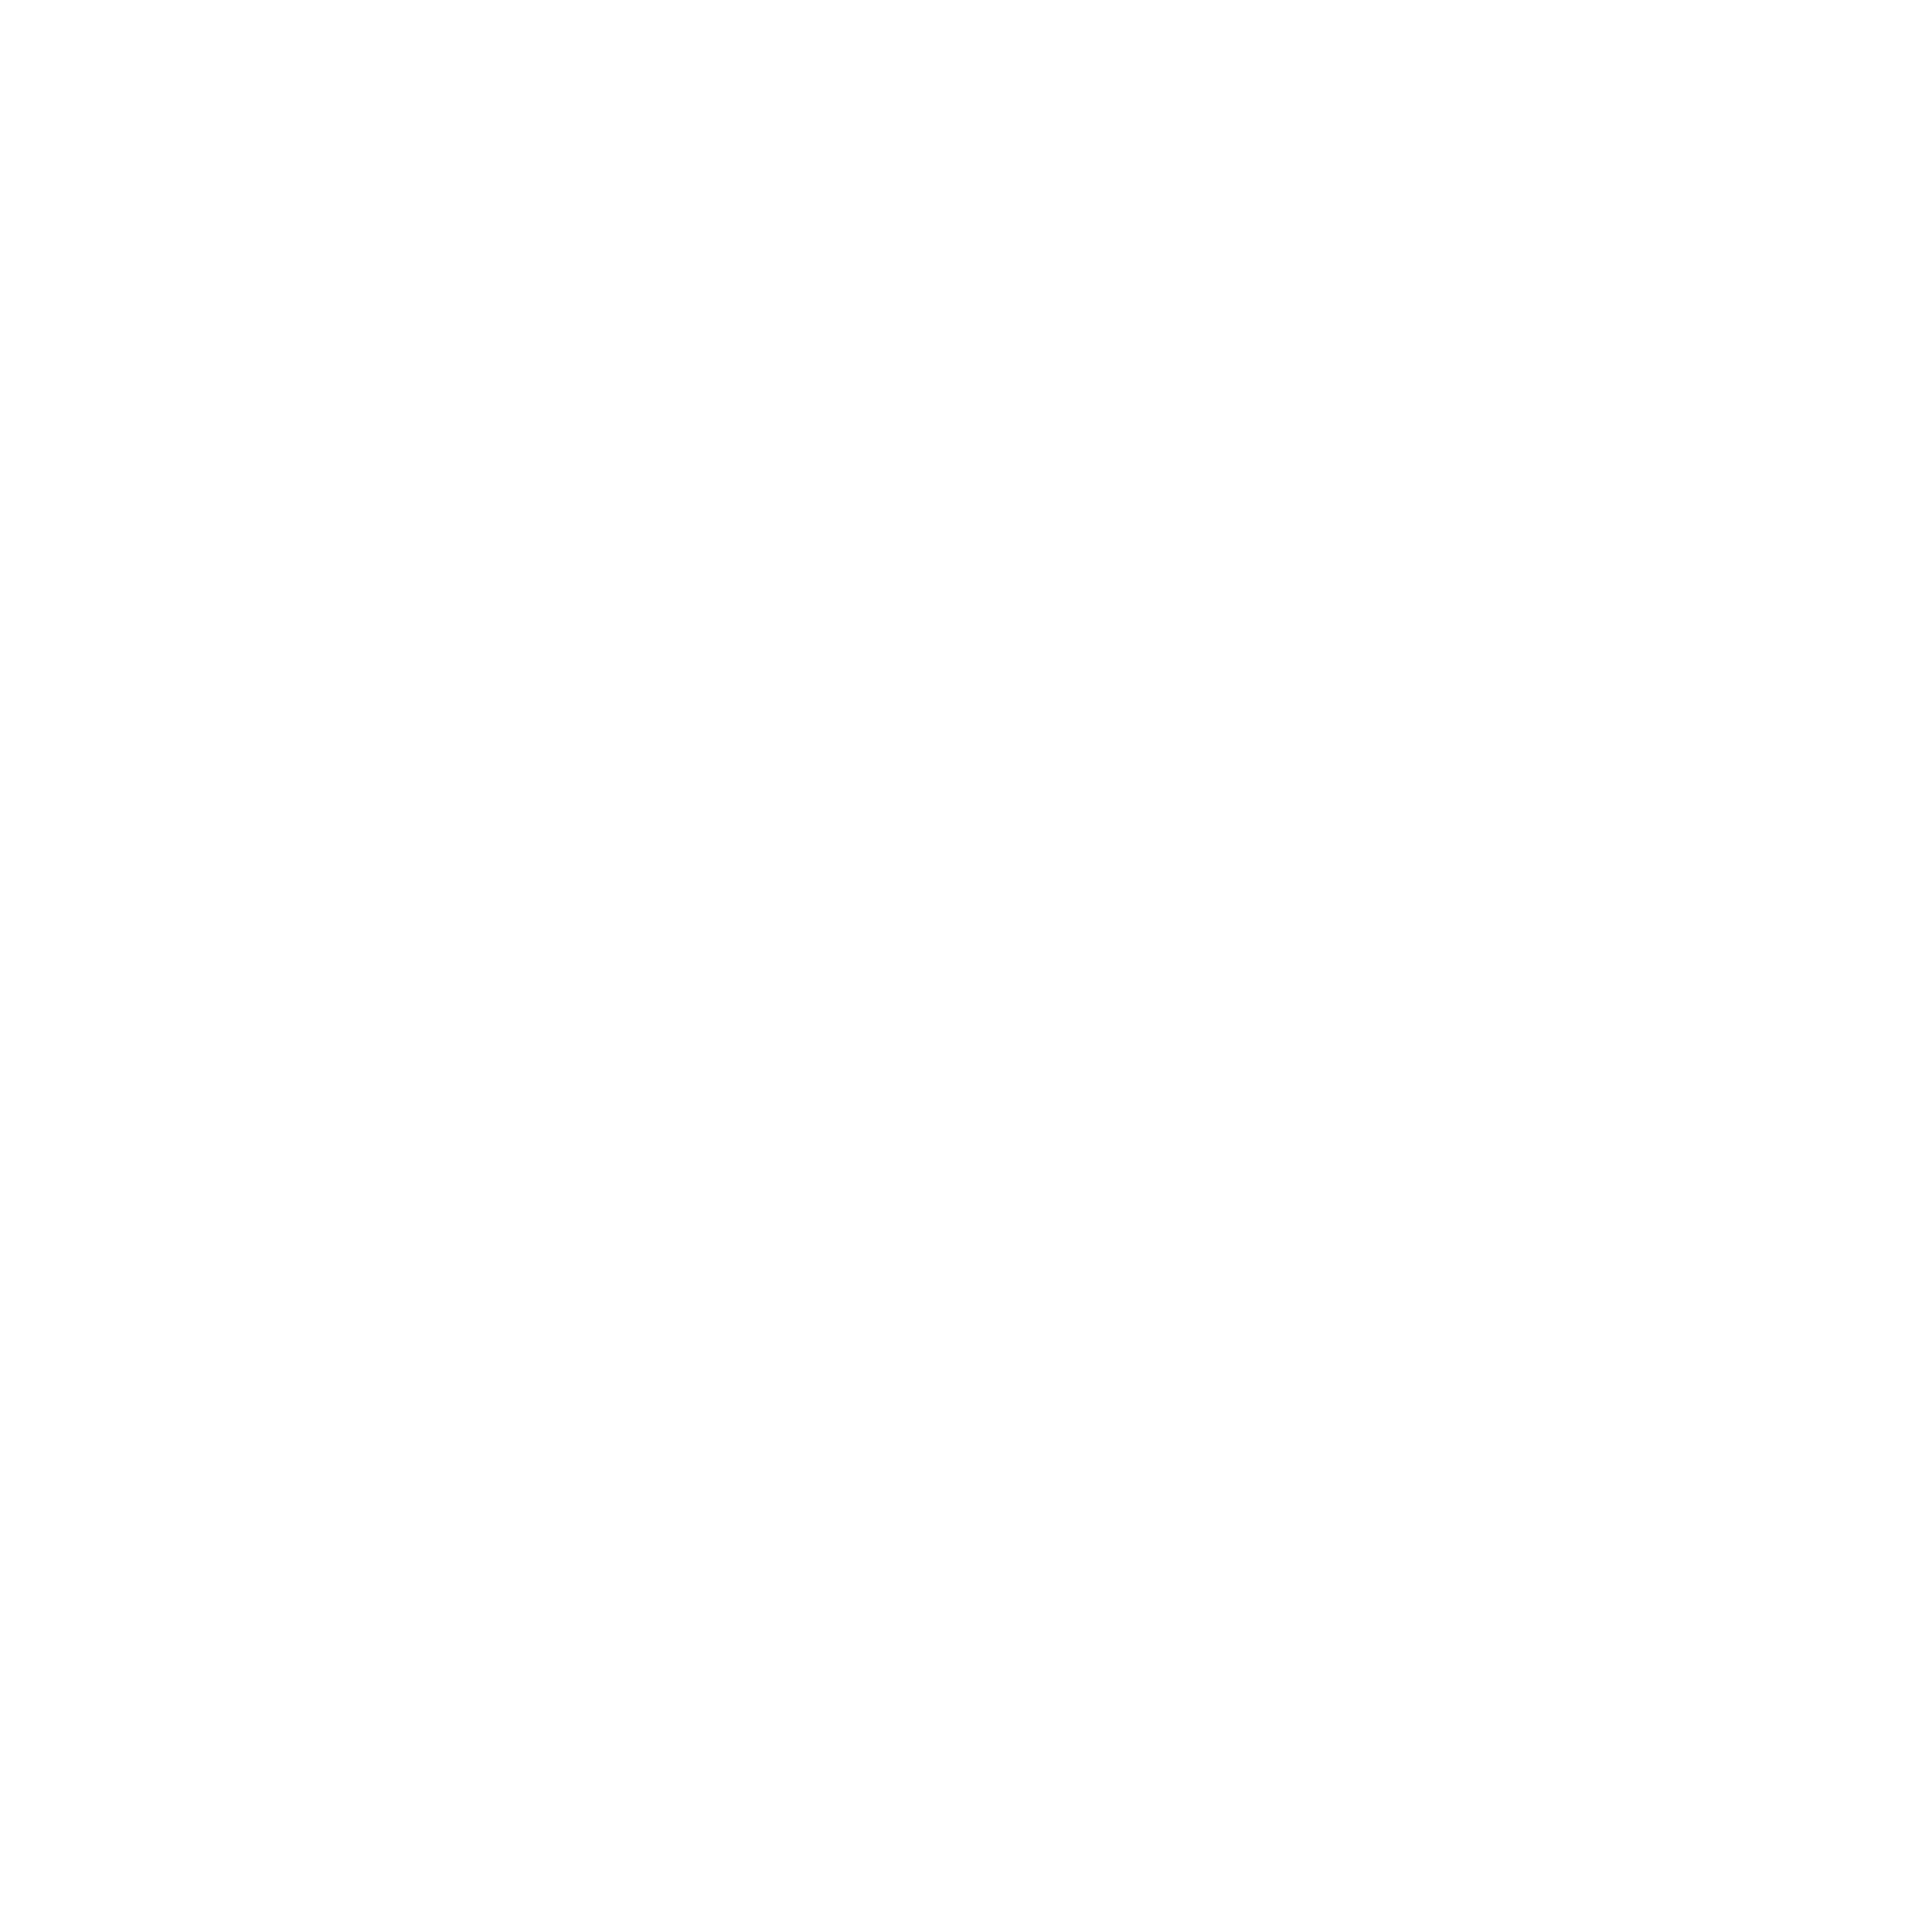 Private Client Tax Accountants